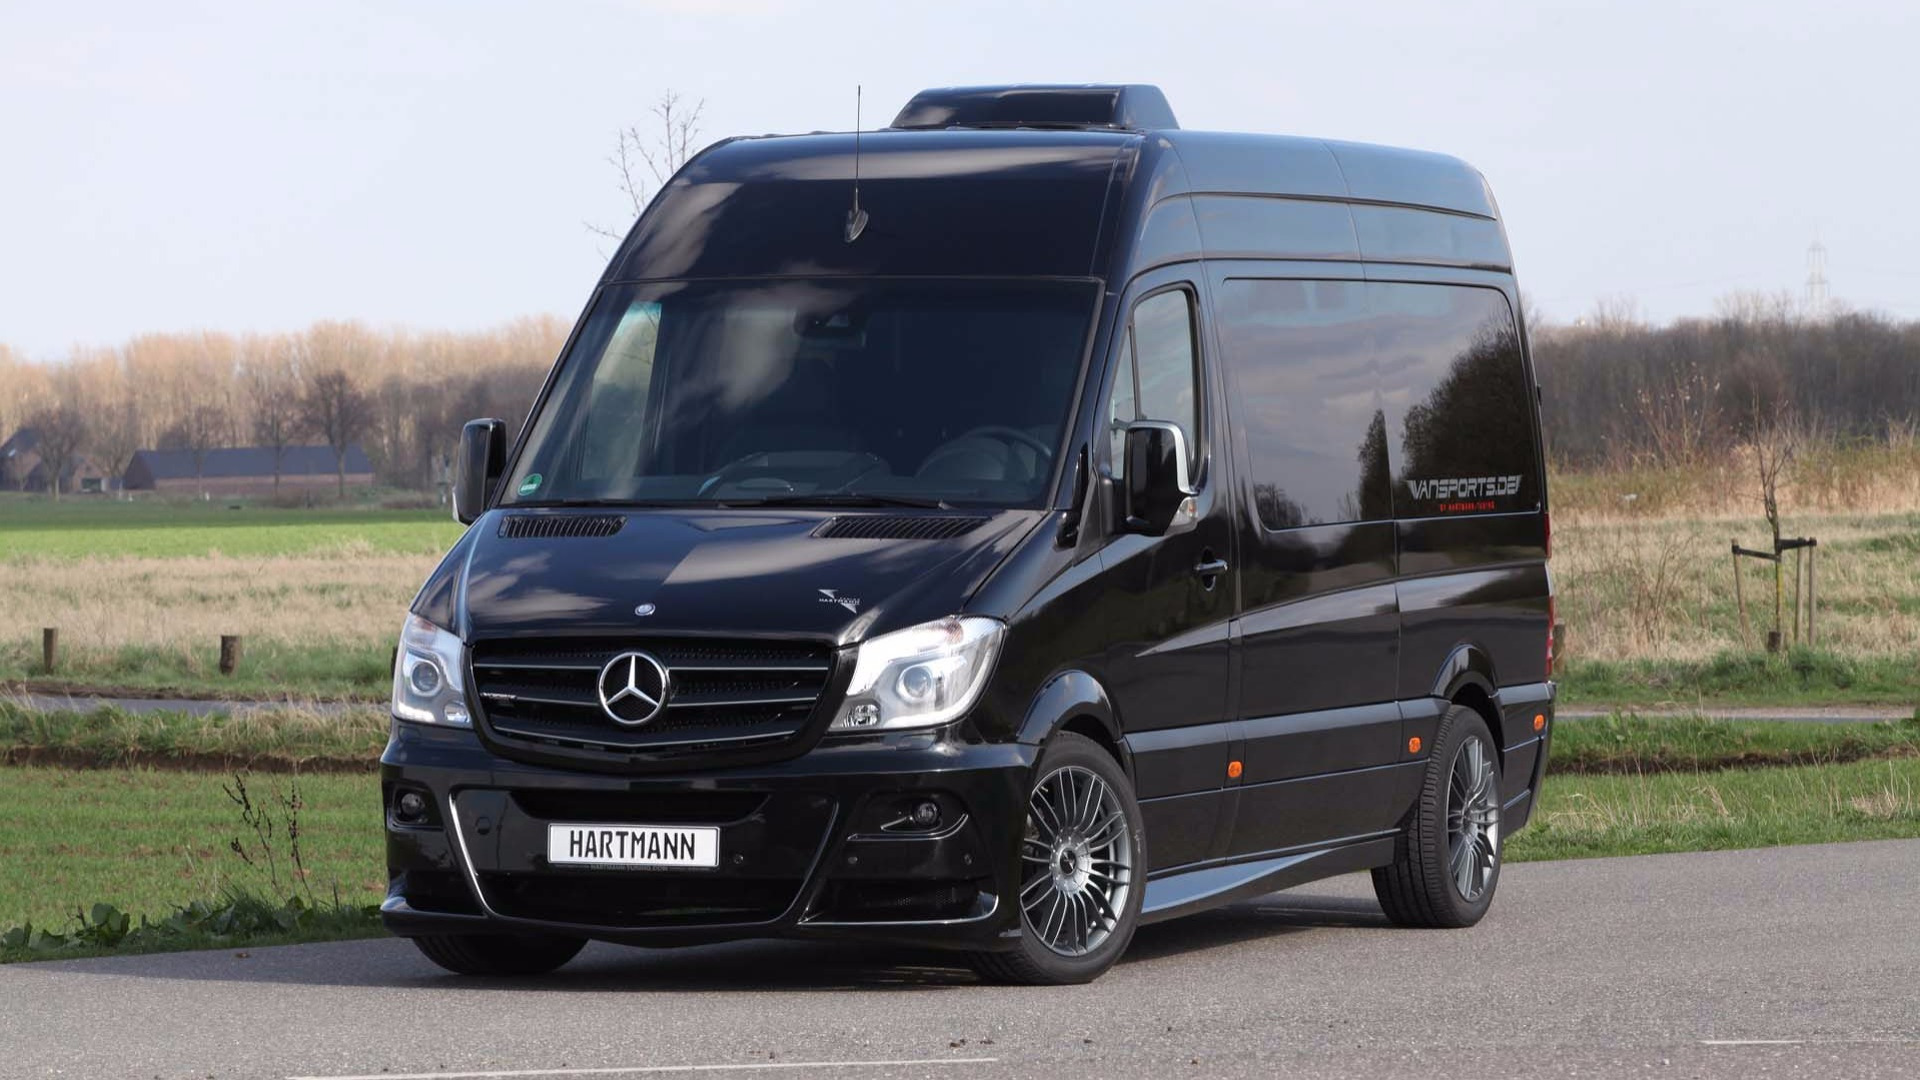 2019 Mb Sprinter >> Hartmann Custom Mercedes Sprinter Makes Efficient Use Of Space